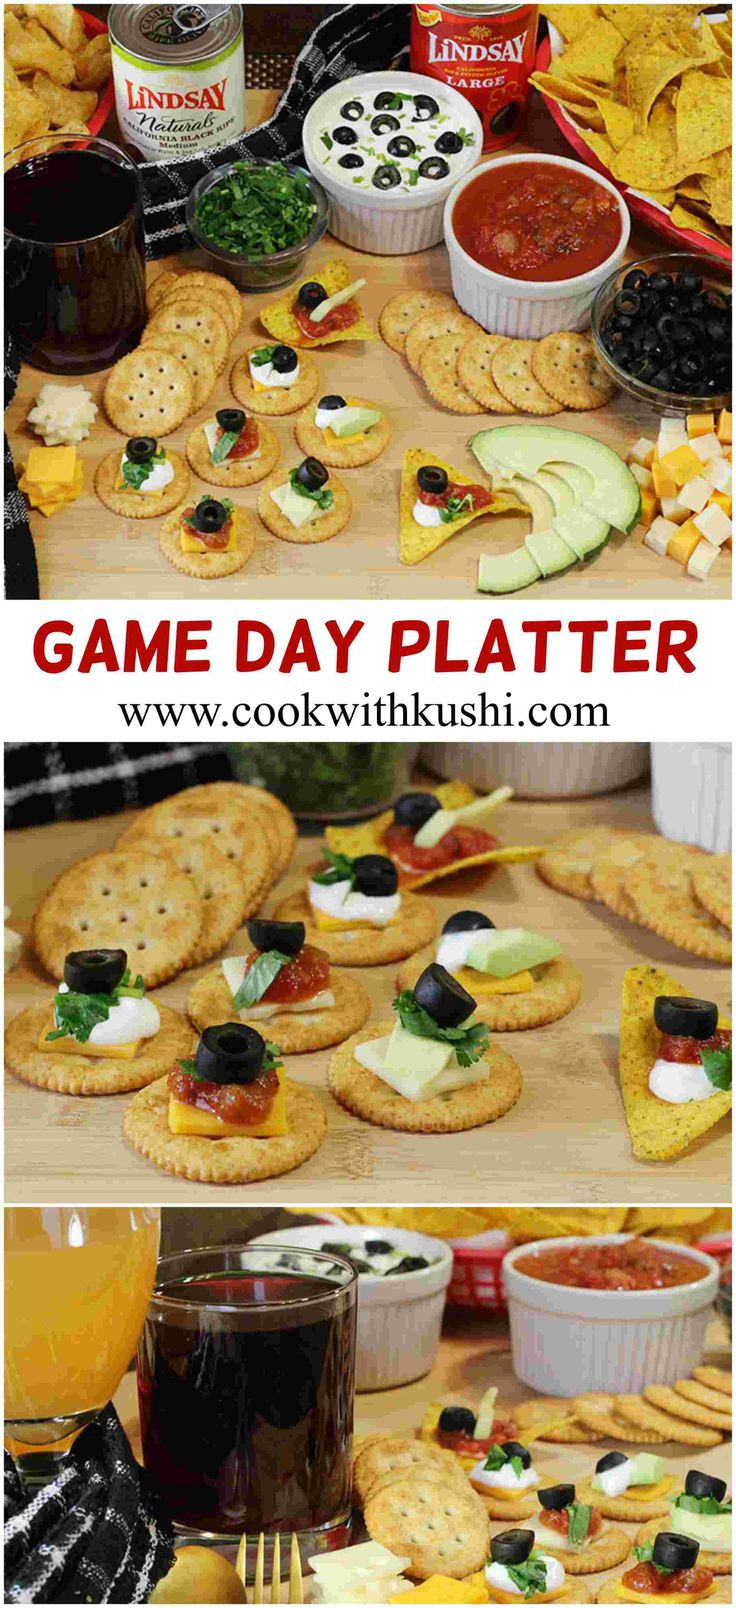 Game Day Platter is a quick and easy to make appetizer and a true crowd favorite specially during football and basketball season.  @lindsayolives  #TeamLindsay #GameDayMoment #bhgfood #buzzfeedfood #feedeed #appetizer #fingerfood #snack #dip #recipe #starter #holiday